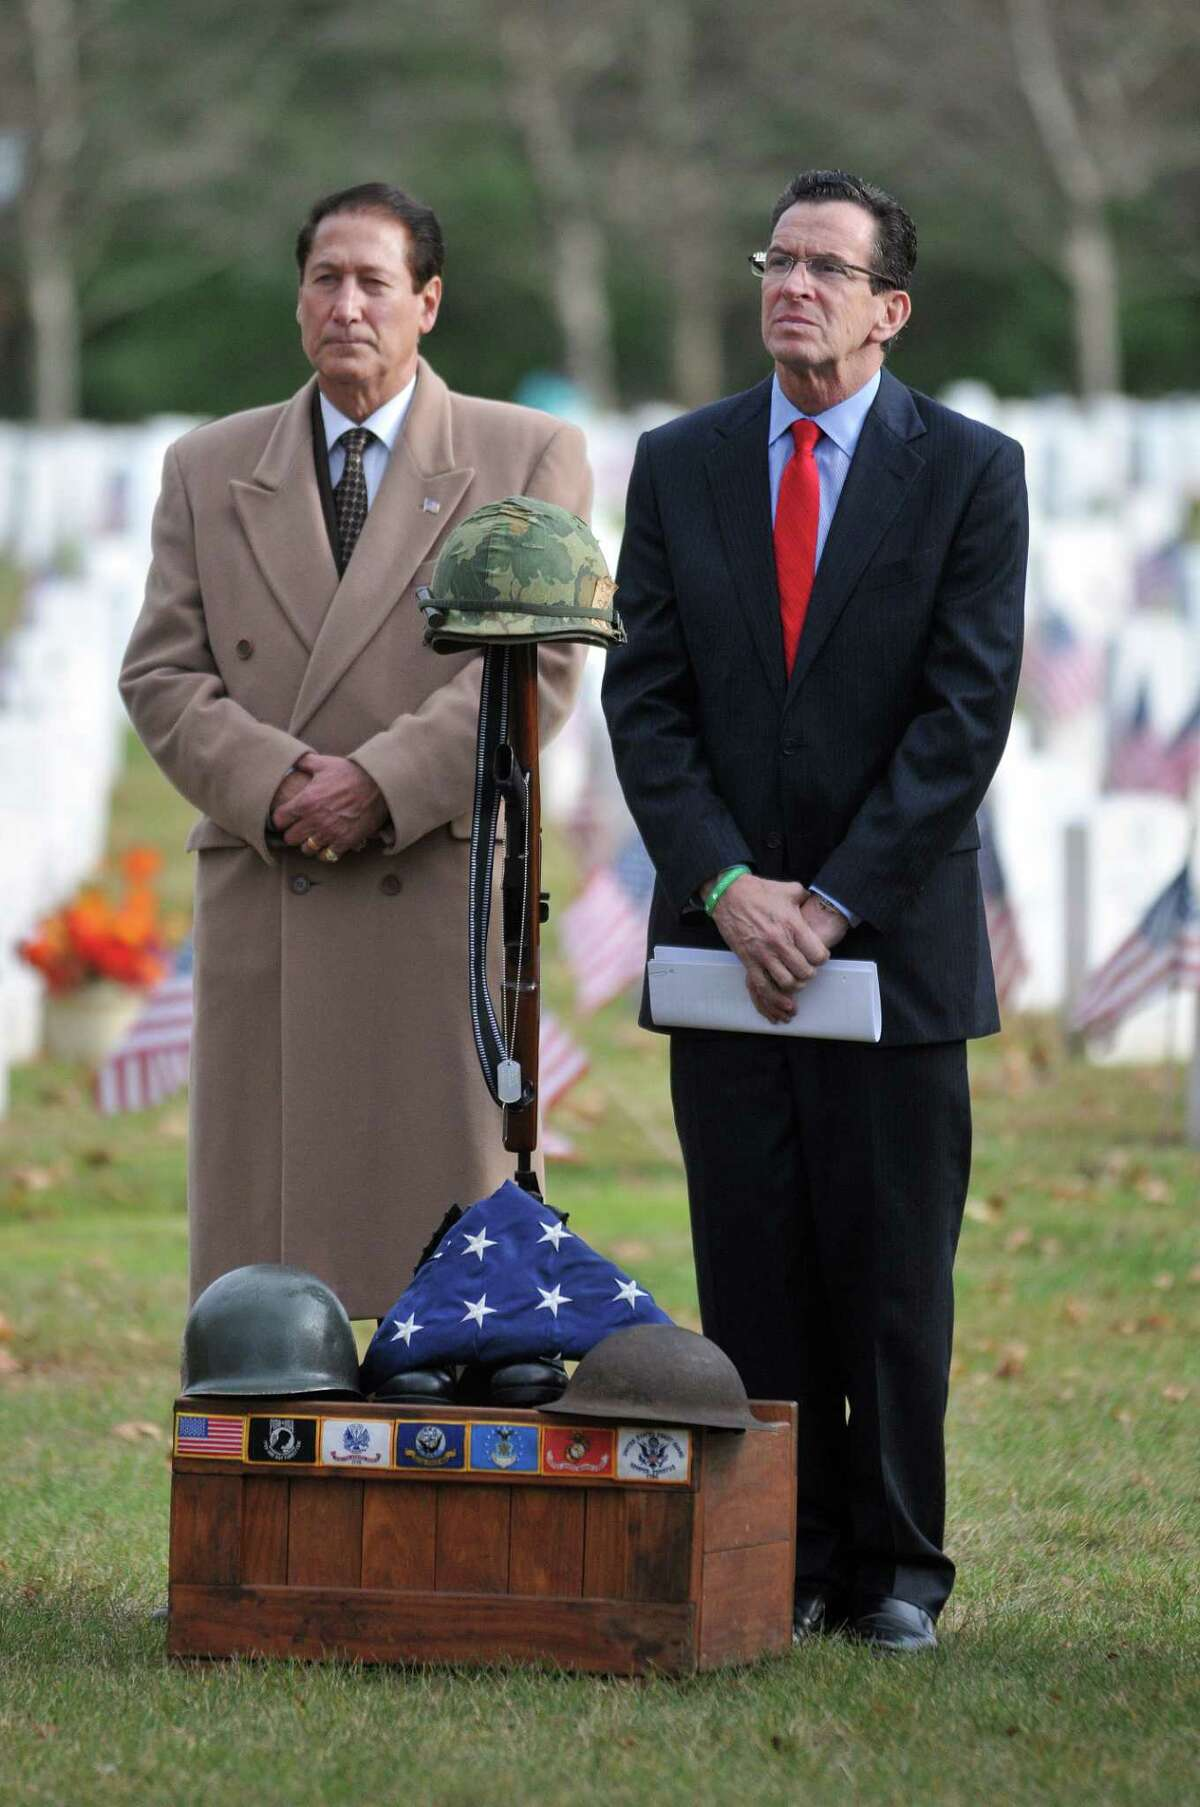 Councilman Tom Serra and Gov. Dannel P. Malloy at the Veterans Day ceremony Monday afternoon at the State of Connecticut Veterans' Cemetery at 317 Bow Lane in Middletown. Catherine Avalone - The Middletown Press